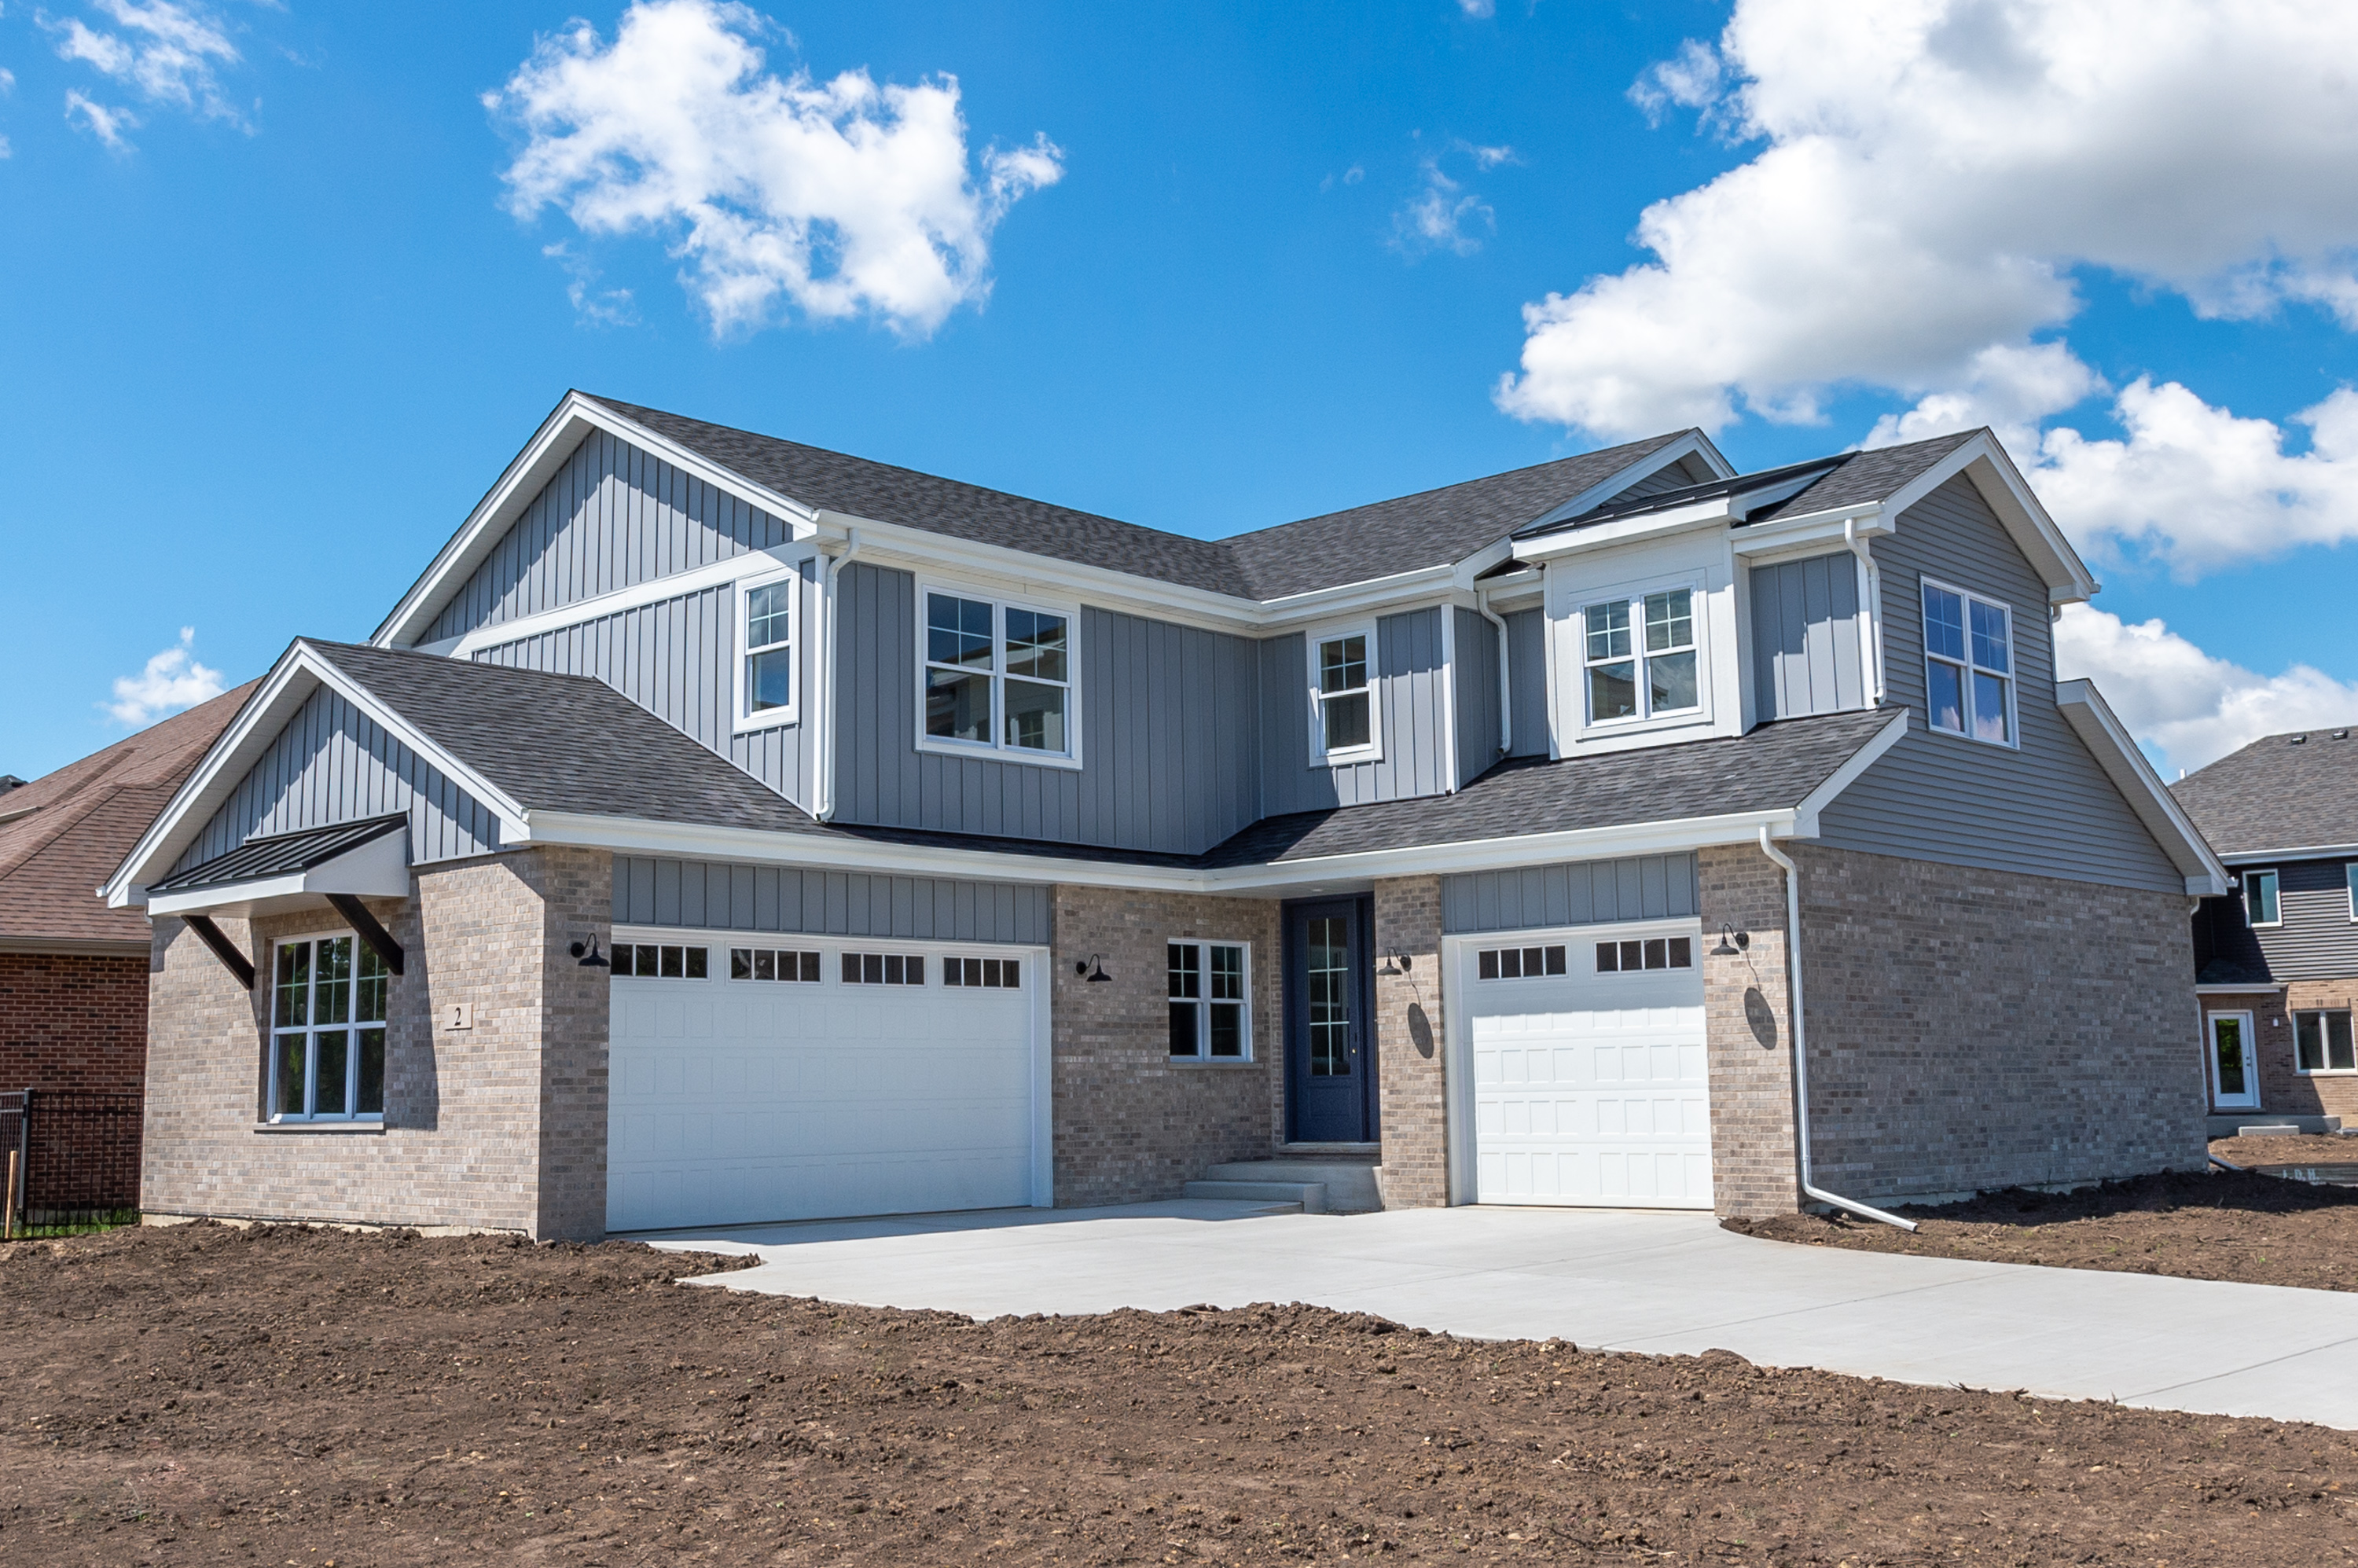 Move-In Ready: Gallagher and Henry Unveils One-of-a-Kind Home in Lemont